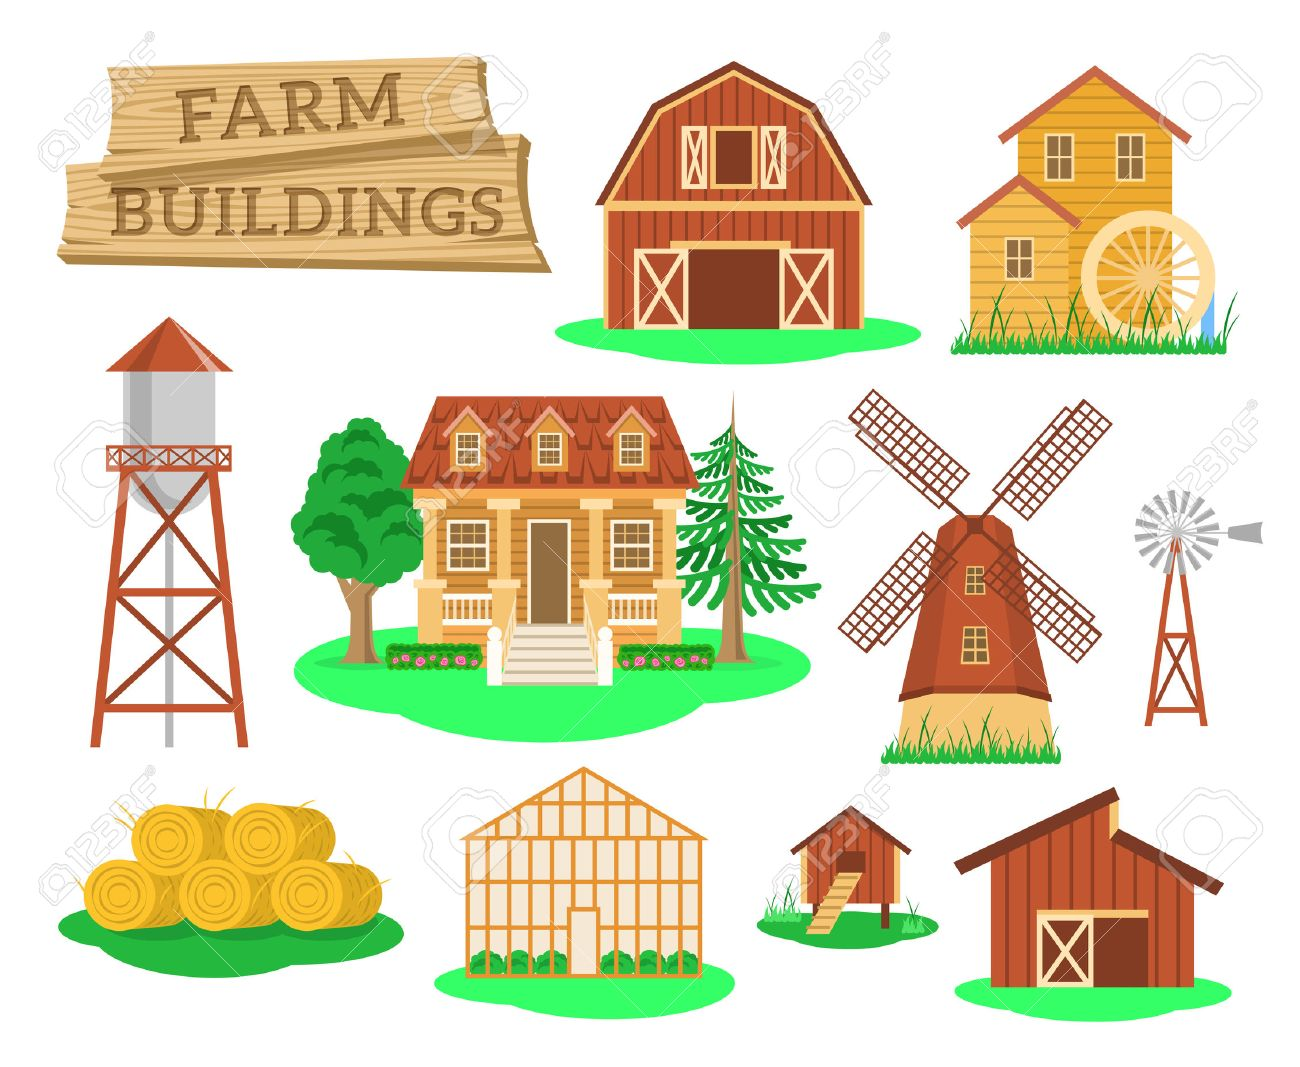 Farm buildings and constructions flat infographic vector elements set. Icons of farmer house, barn, windmill, water mill, greenhouse, water tower etc. Agriculture industry and countryside life objects - 54184434